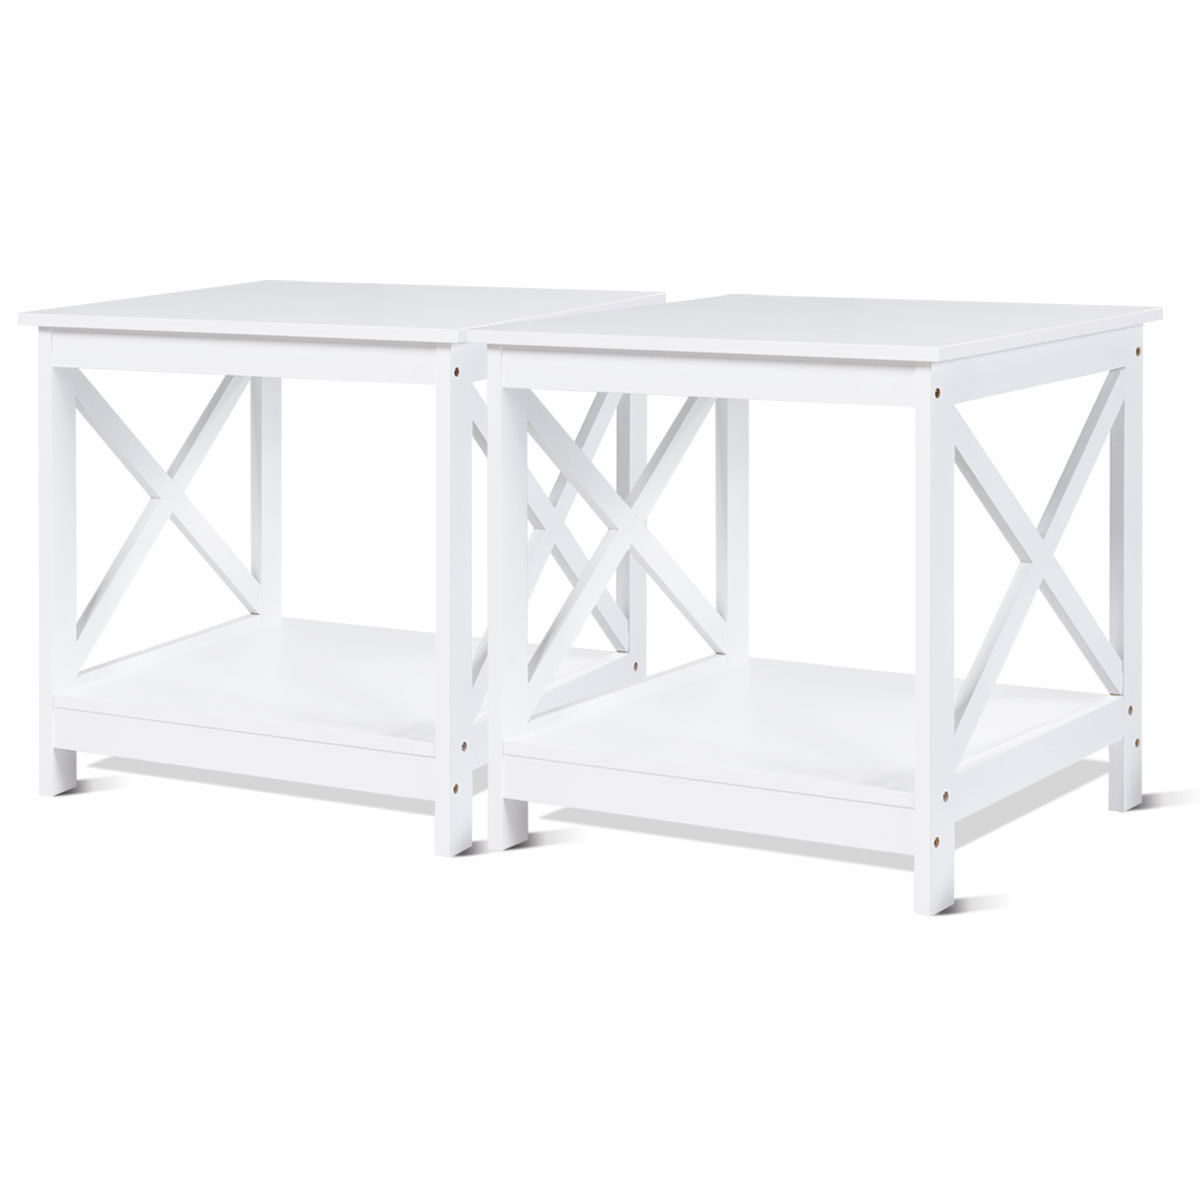 accent sofa best sunbrella fabric for costway 2 pcs end table x design display shelves side nightstand white